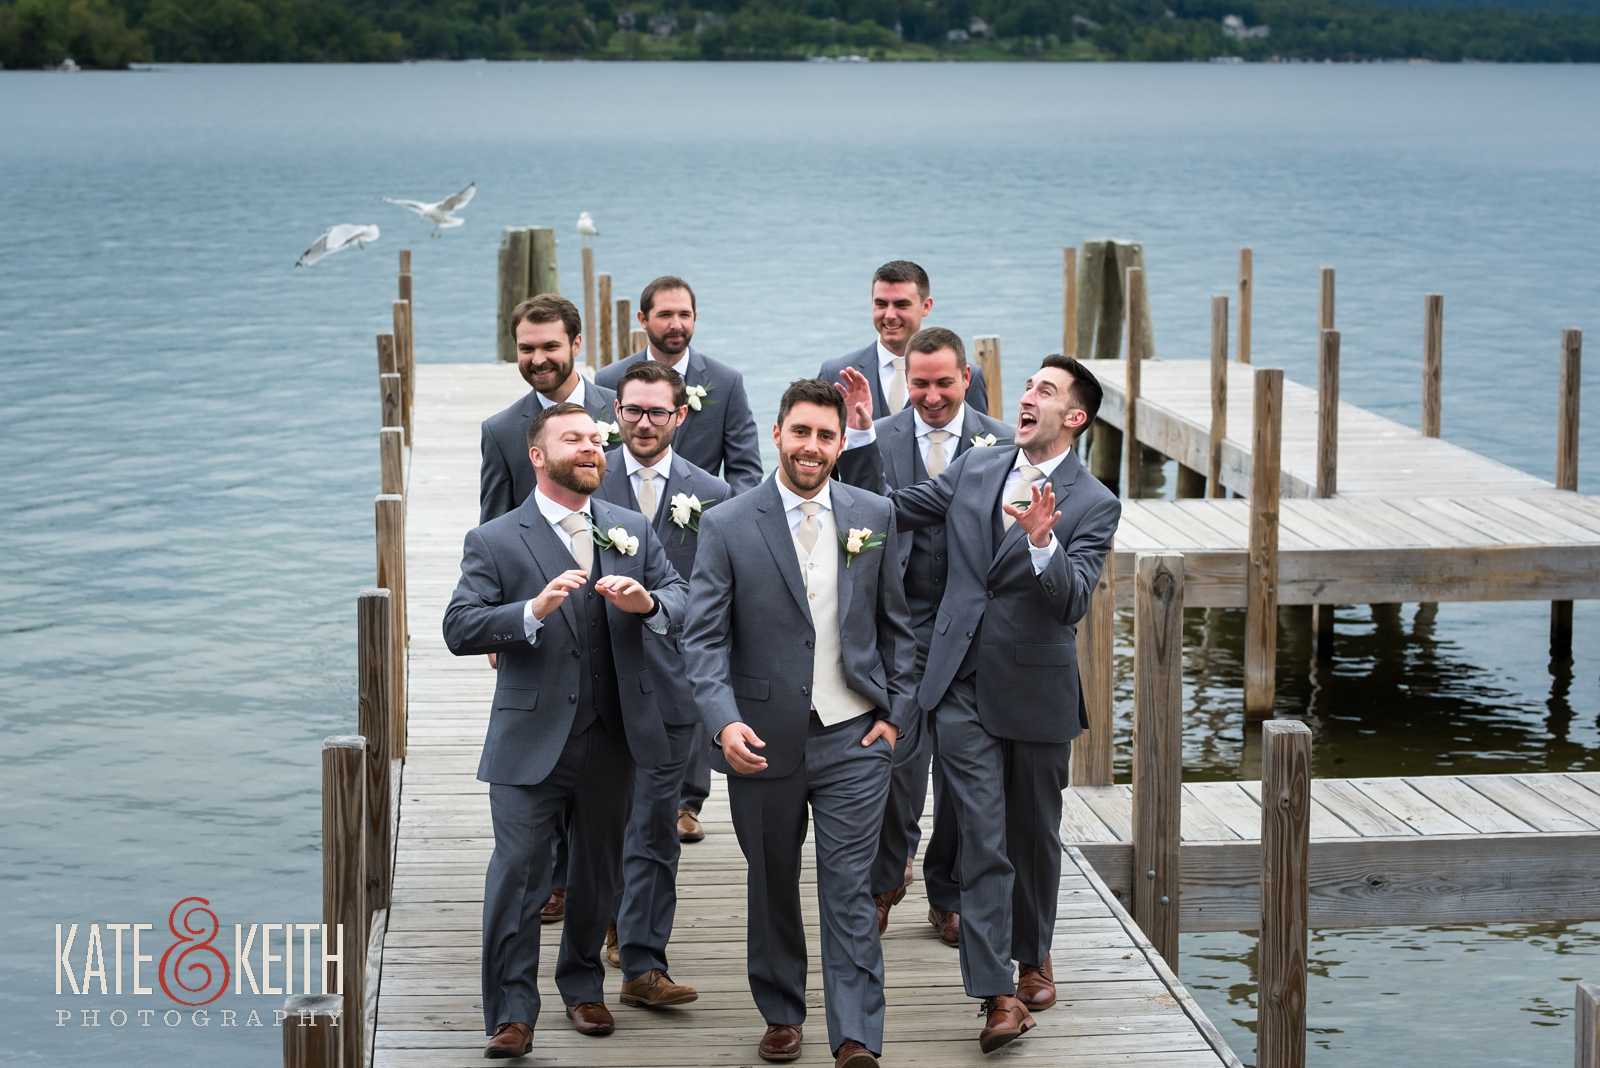 New Hampshire, Lakes Region, Lake Winnipesaukee, The Margate Resort, wedding, outdoor wedding, lakeside wedding, groom getting ready, groomsmen, groomsmens portrait, group photo, fun group photo, fun wedding portraits, silly wedding portraits, silly wedding party photos